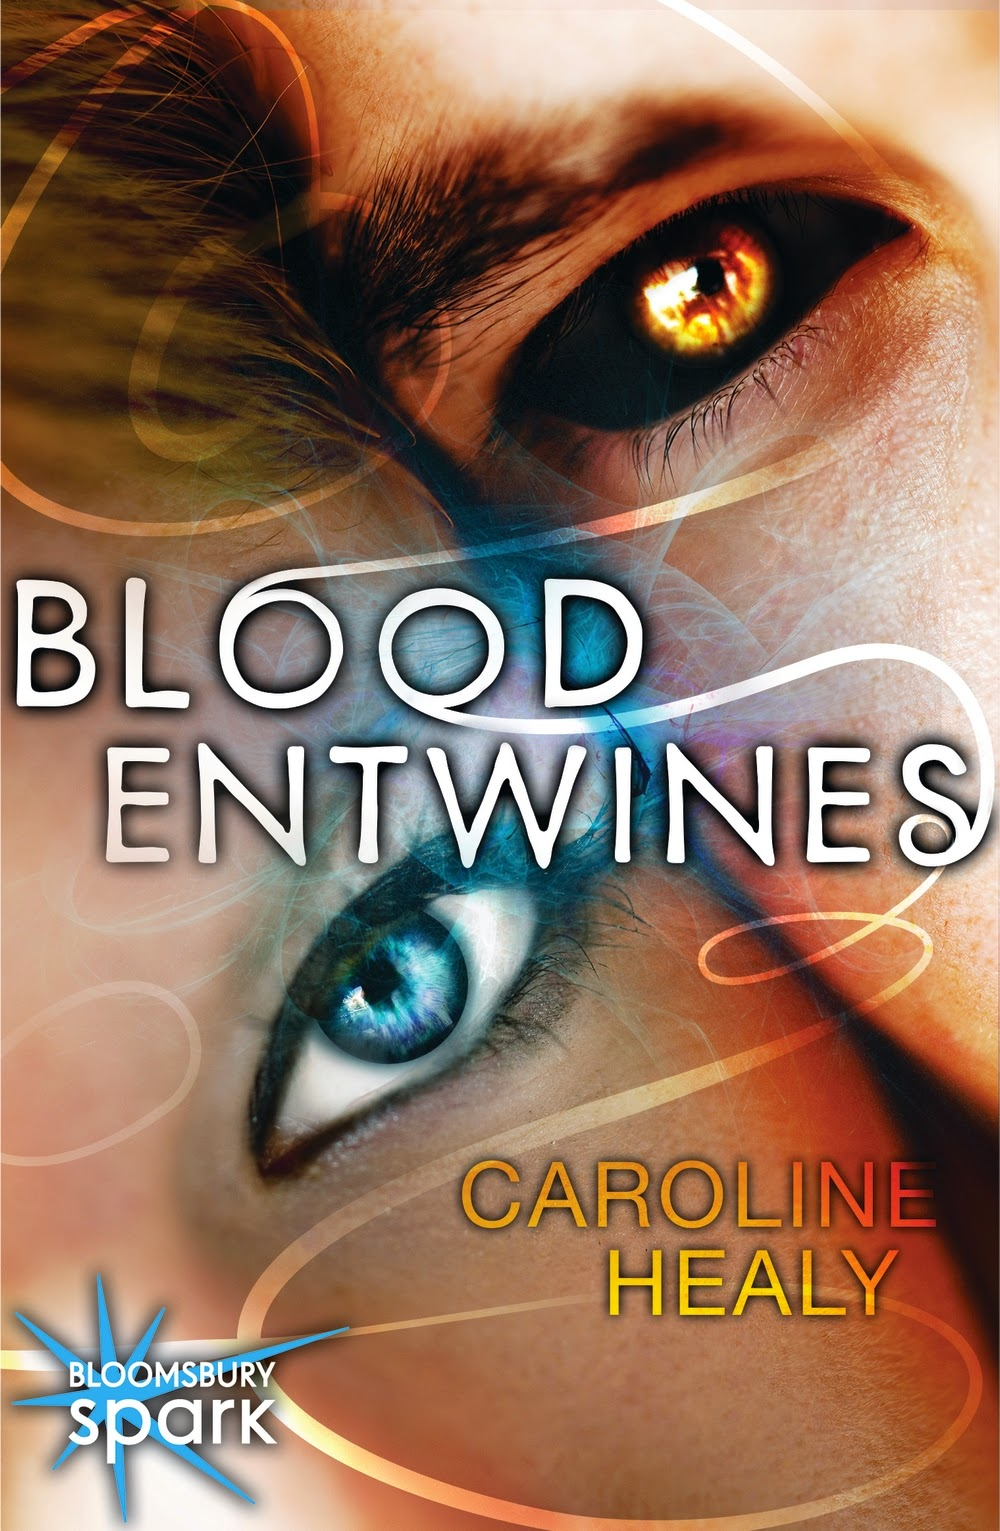 https://www.goodreads.com/book/show/22741557-blood-entwines